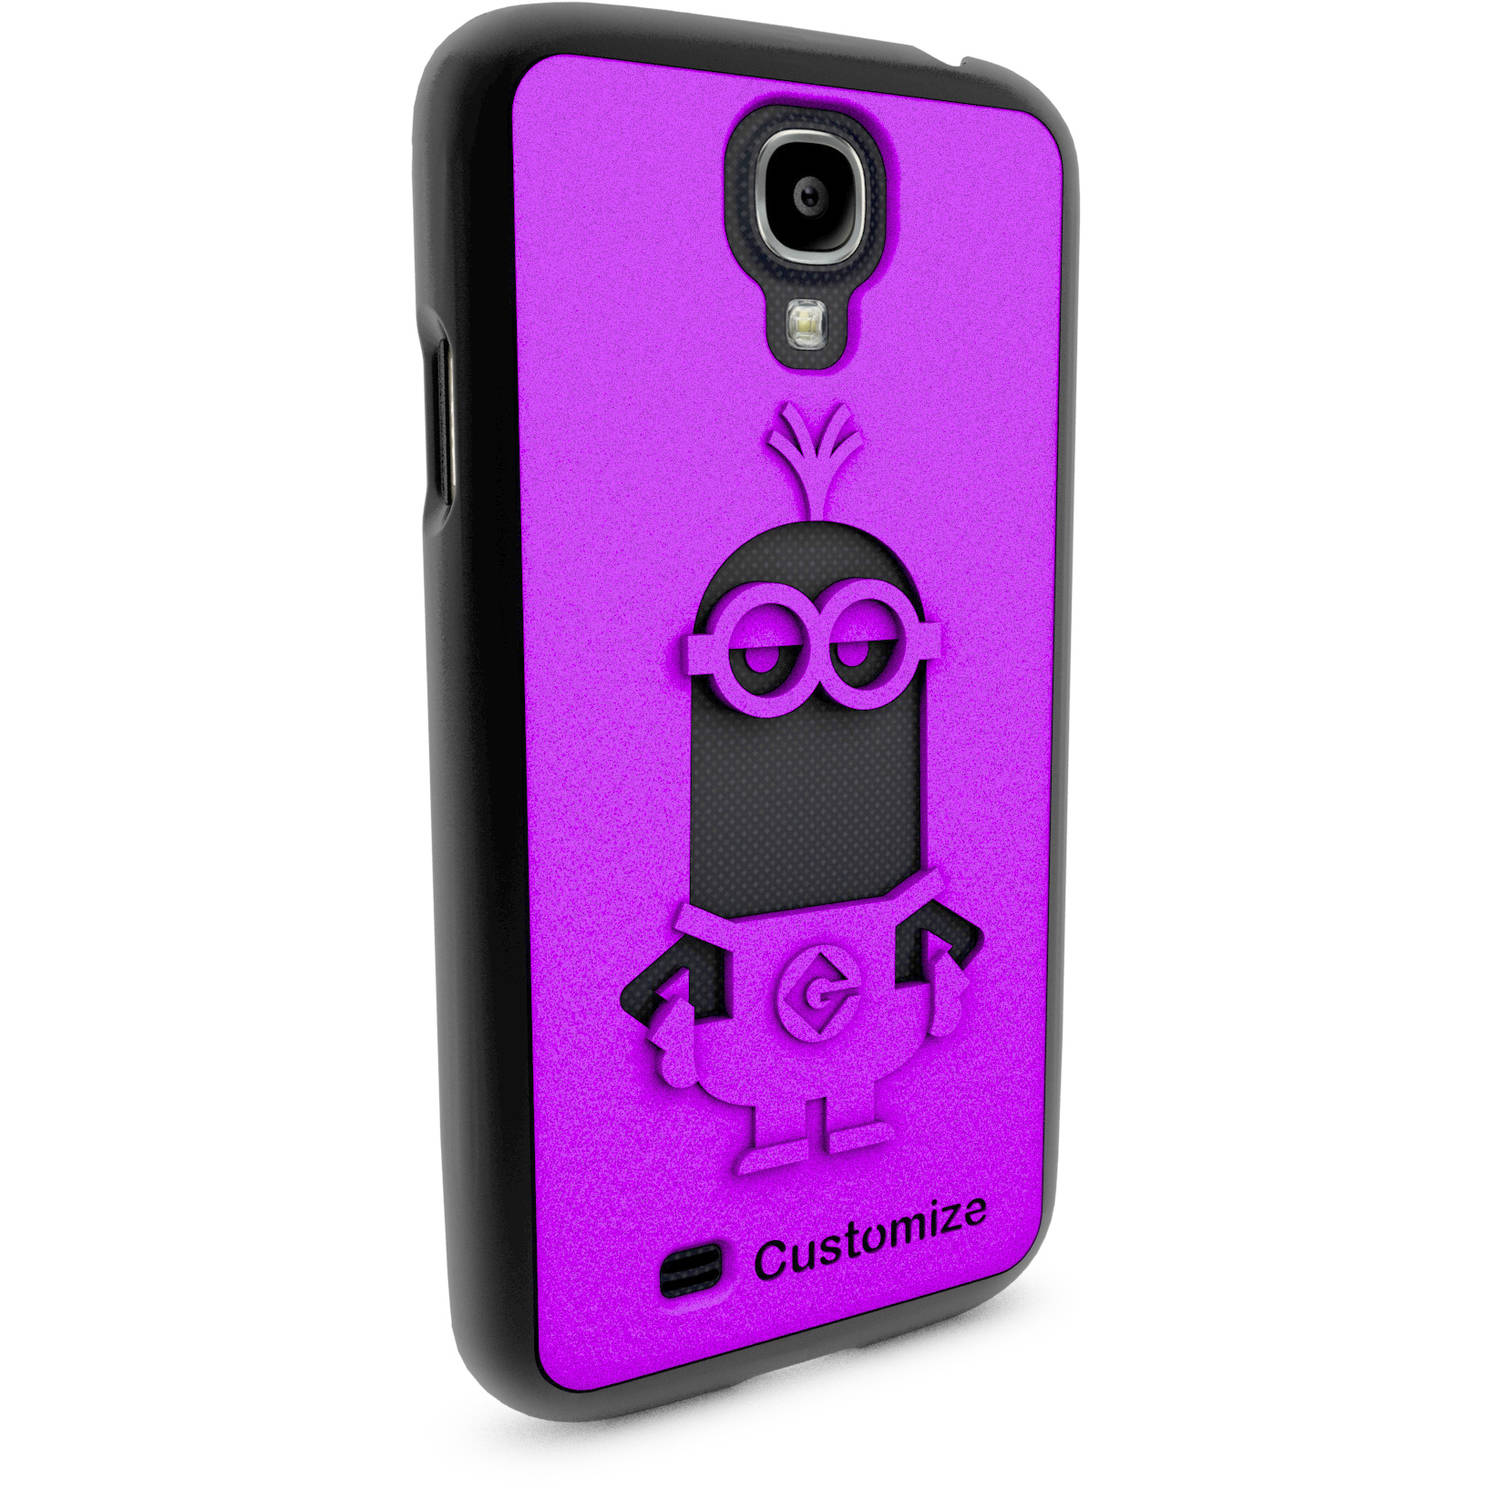 Samsung Galaxy S4 3D Printed Custom Phone Case - Despicable Me - Kevin 2